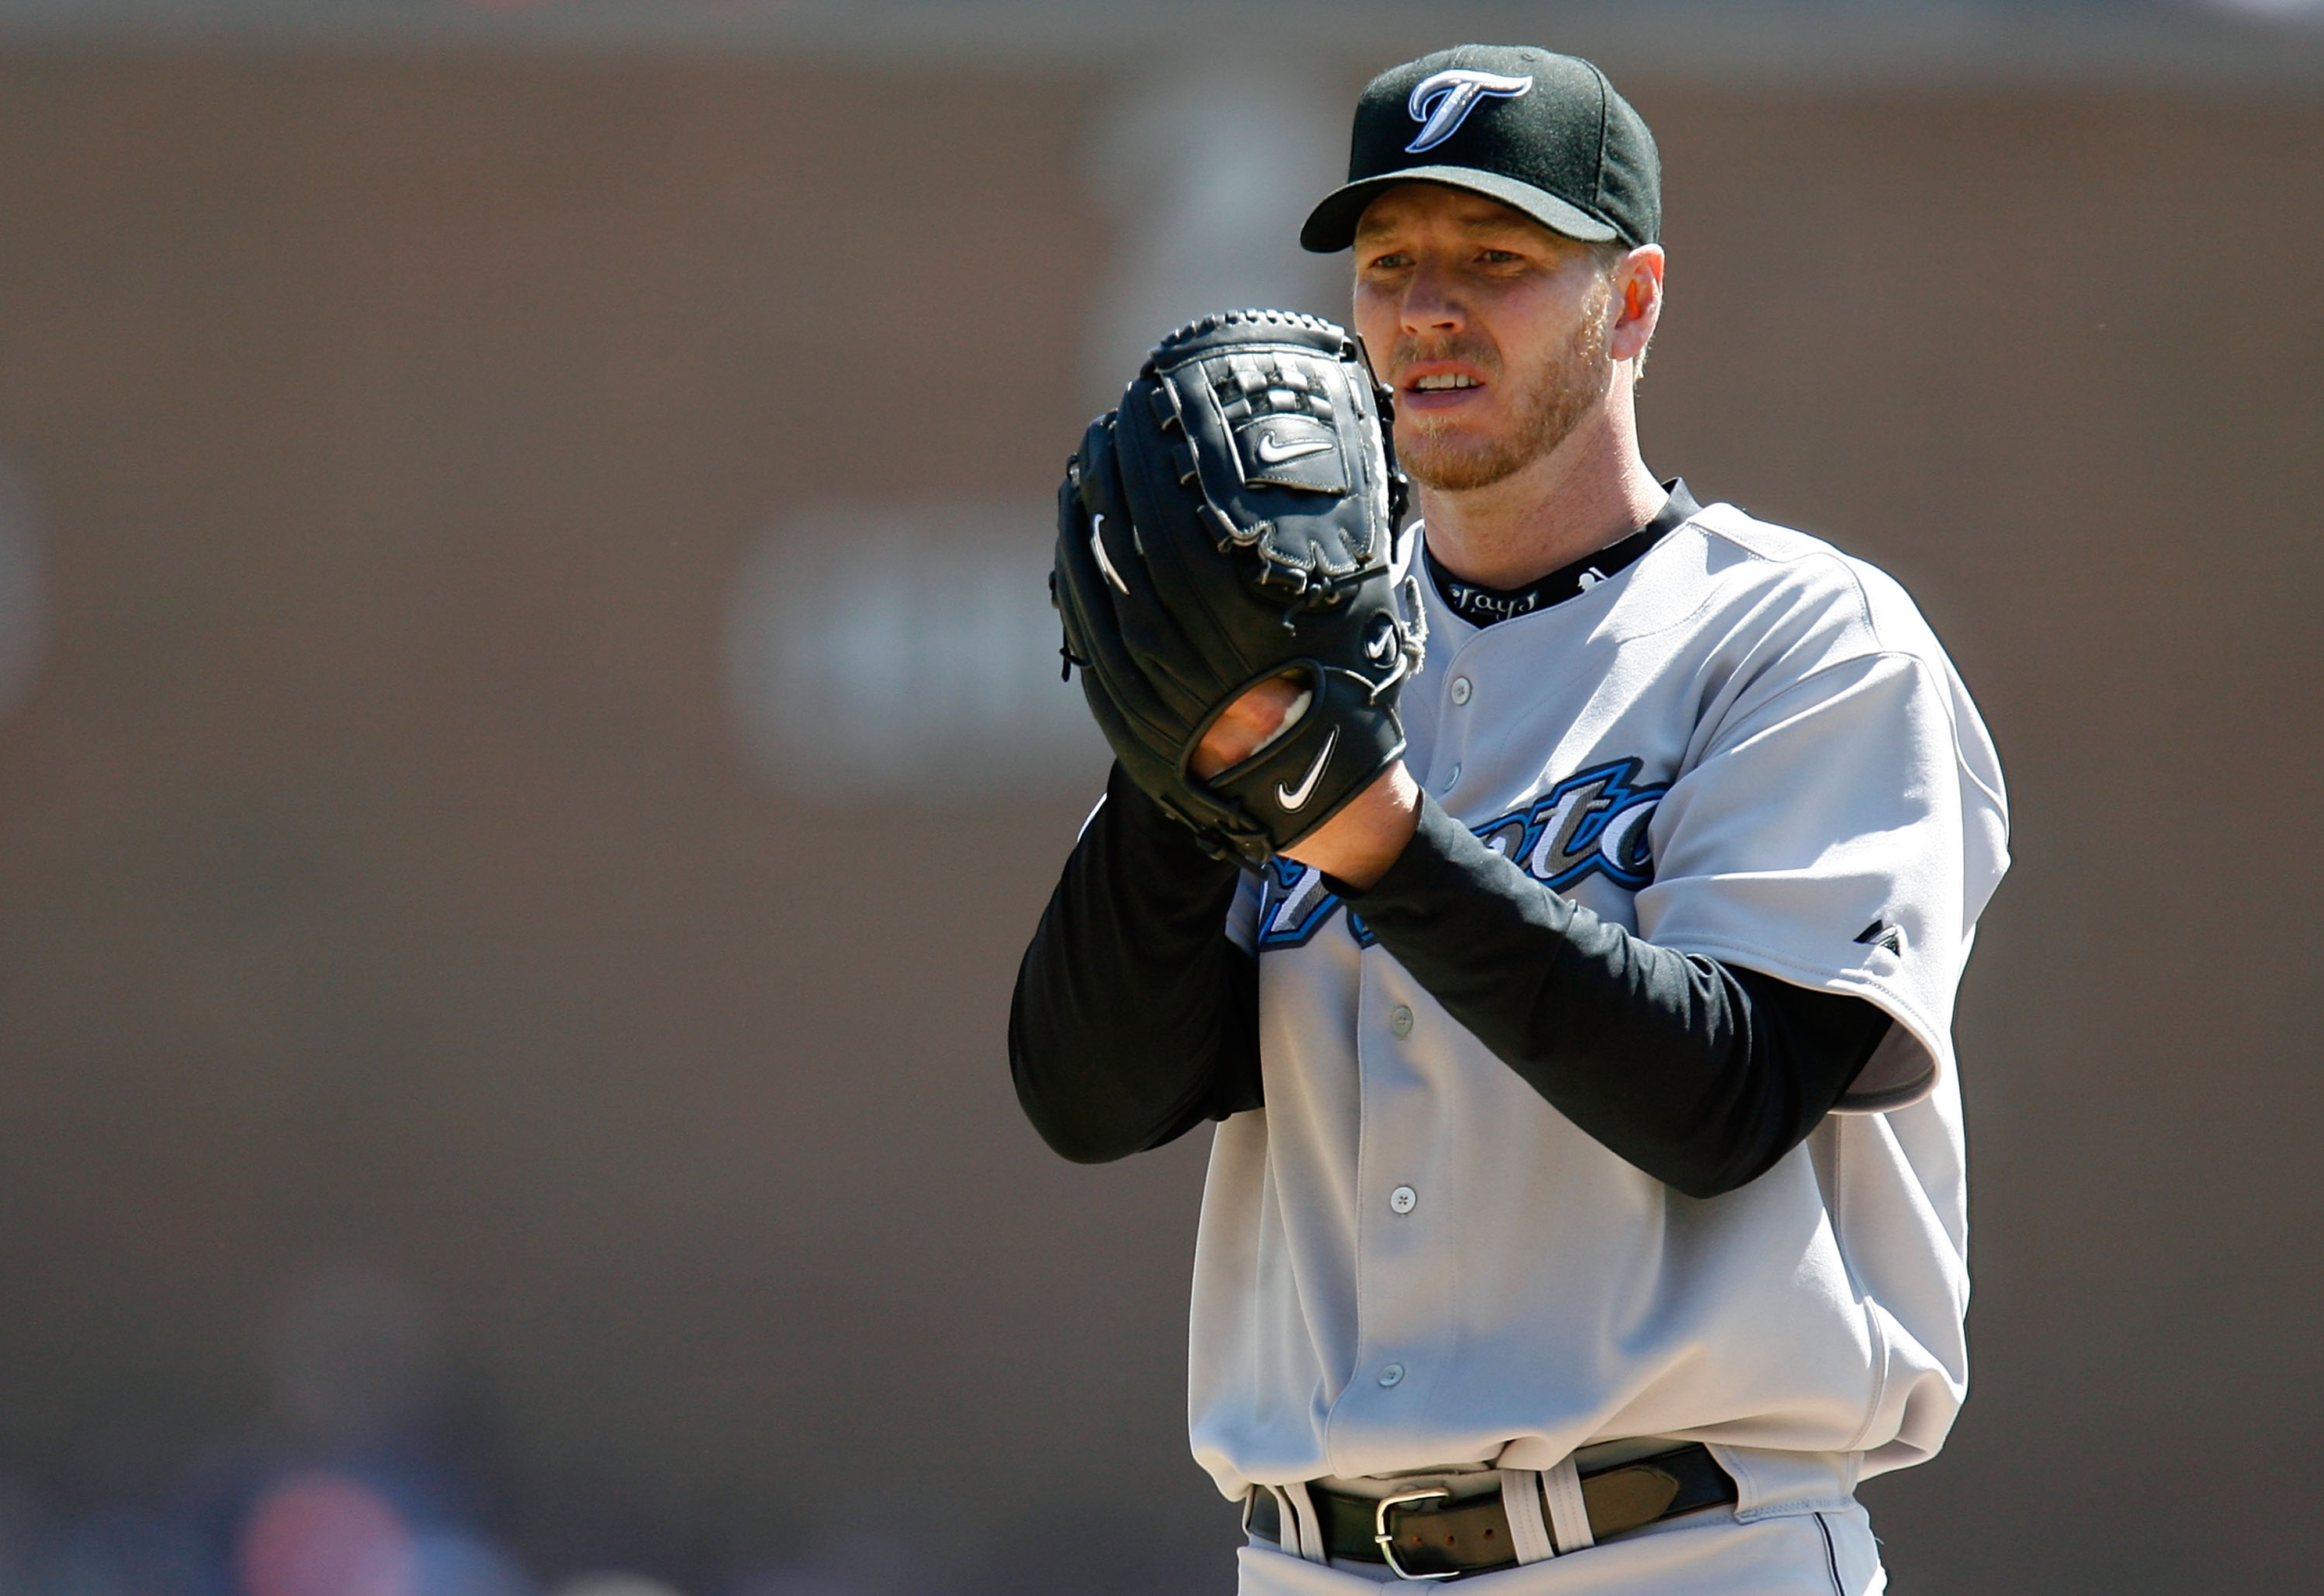 Analysis of the Roy Halladay trade